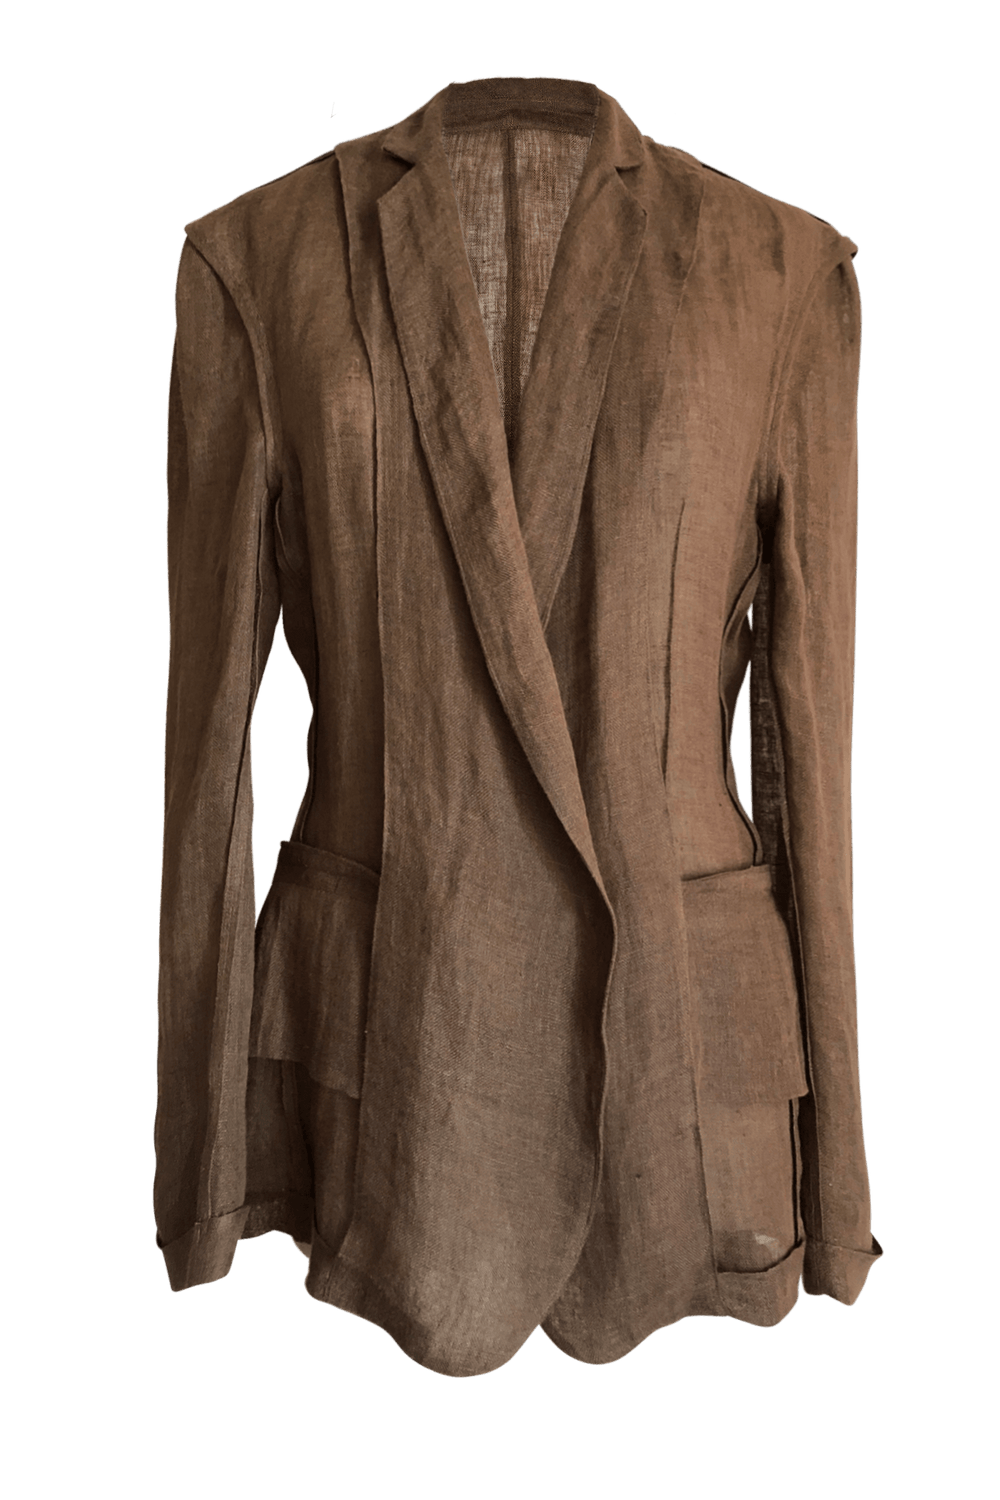 Fashion Designer CARL KAPP collection | Jet oversized brown linen Jacket | Sydney Australia